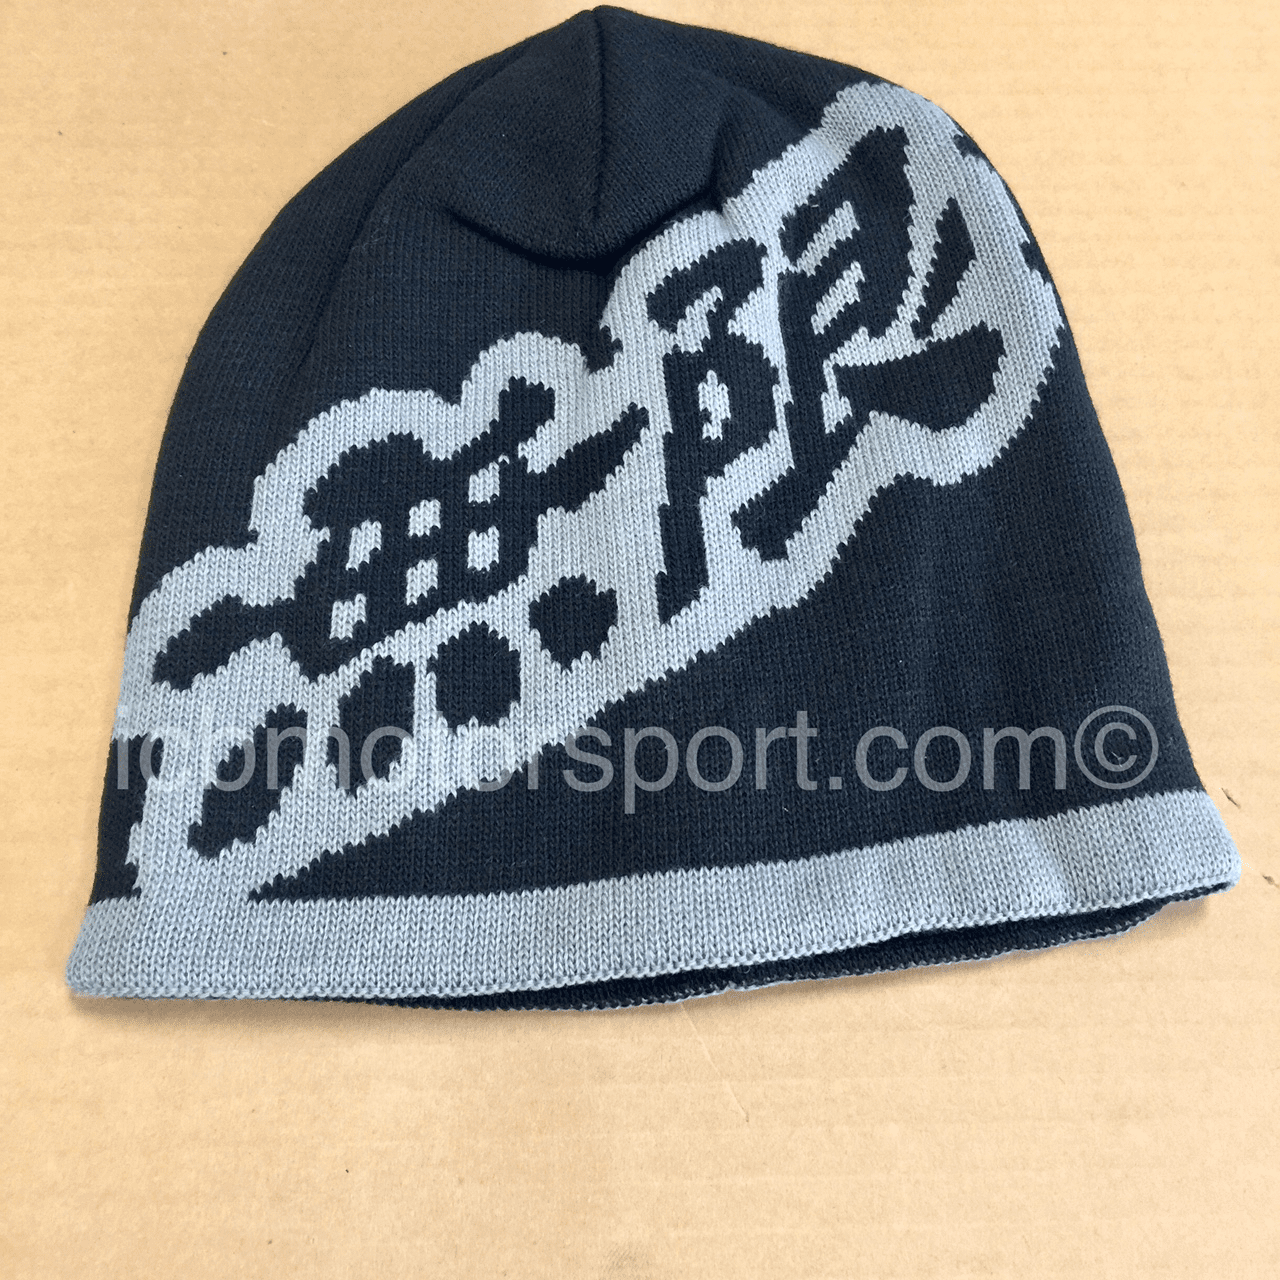 Mugen Power Knit Cap/Beanie 90000-XYH-504A - Discontinued